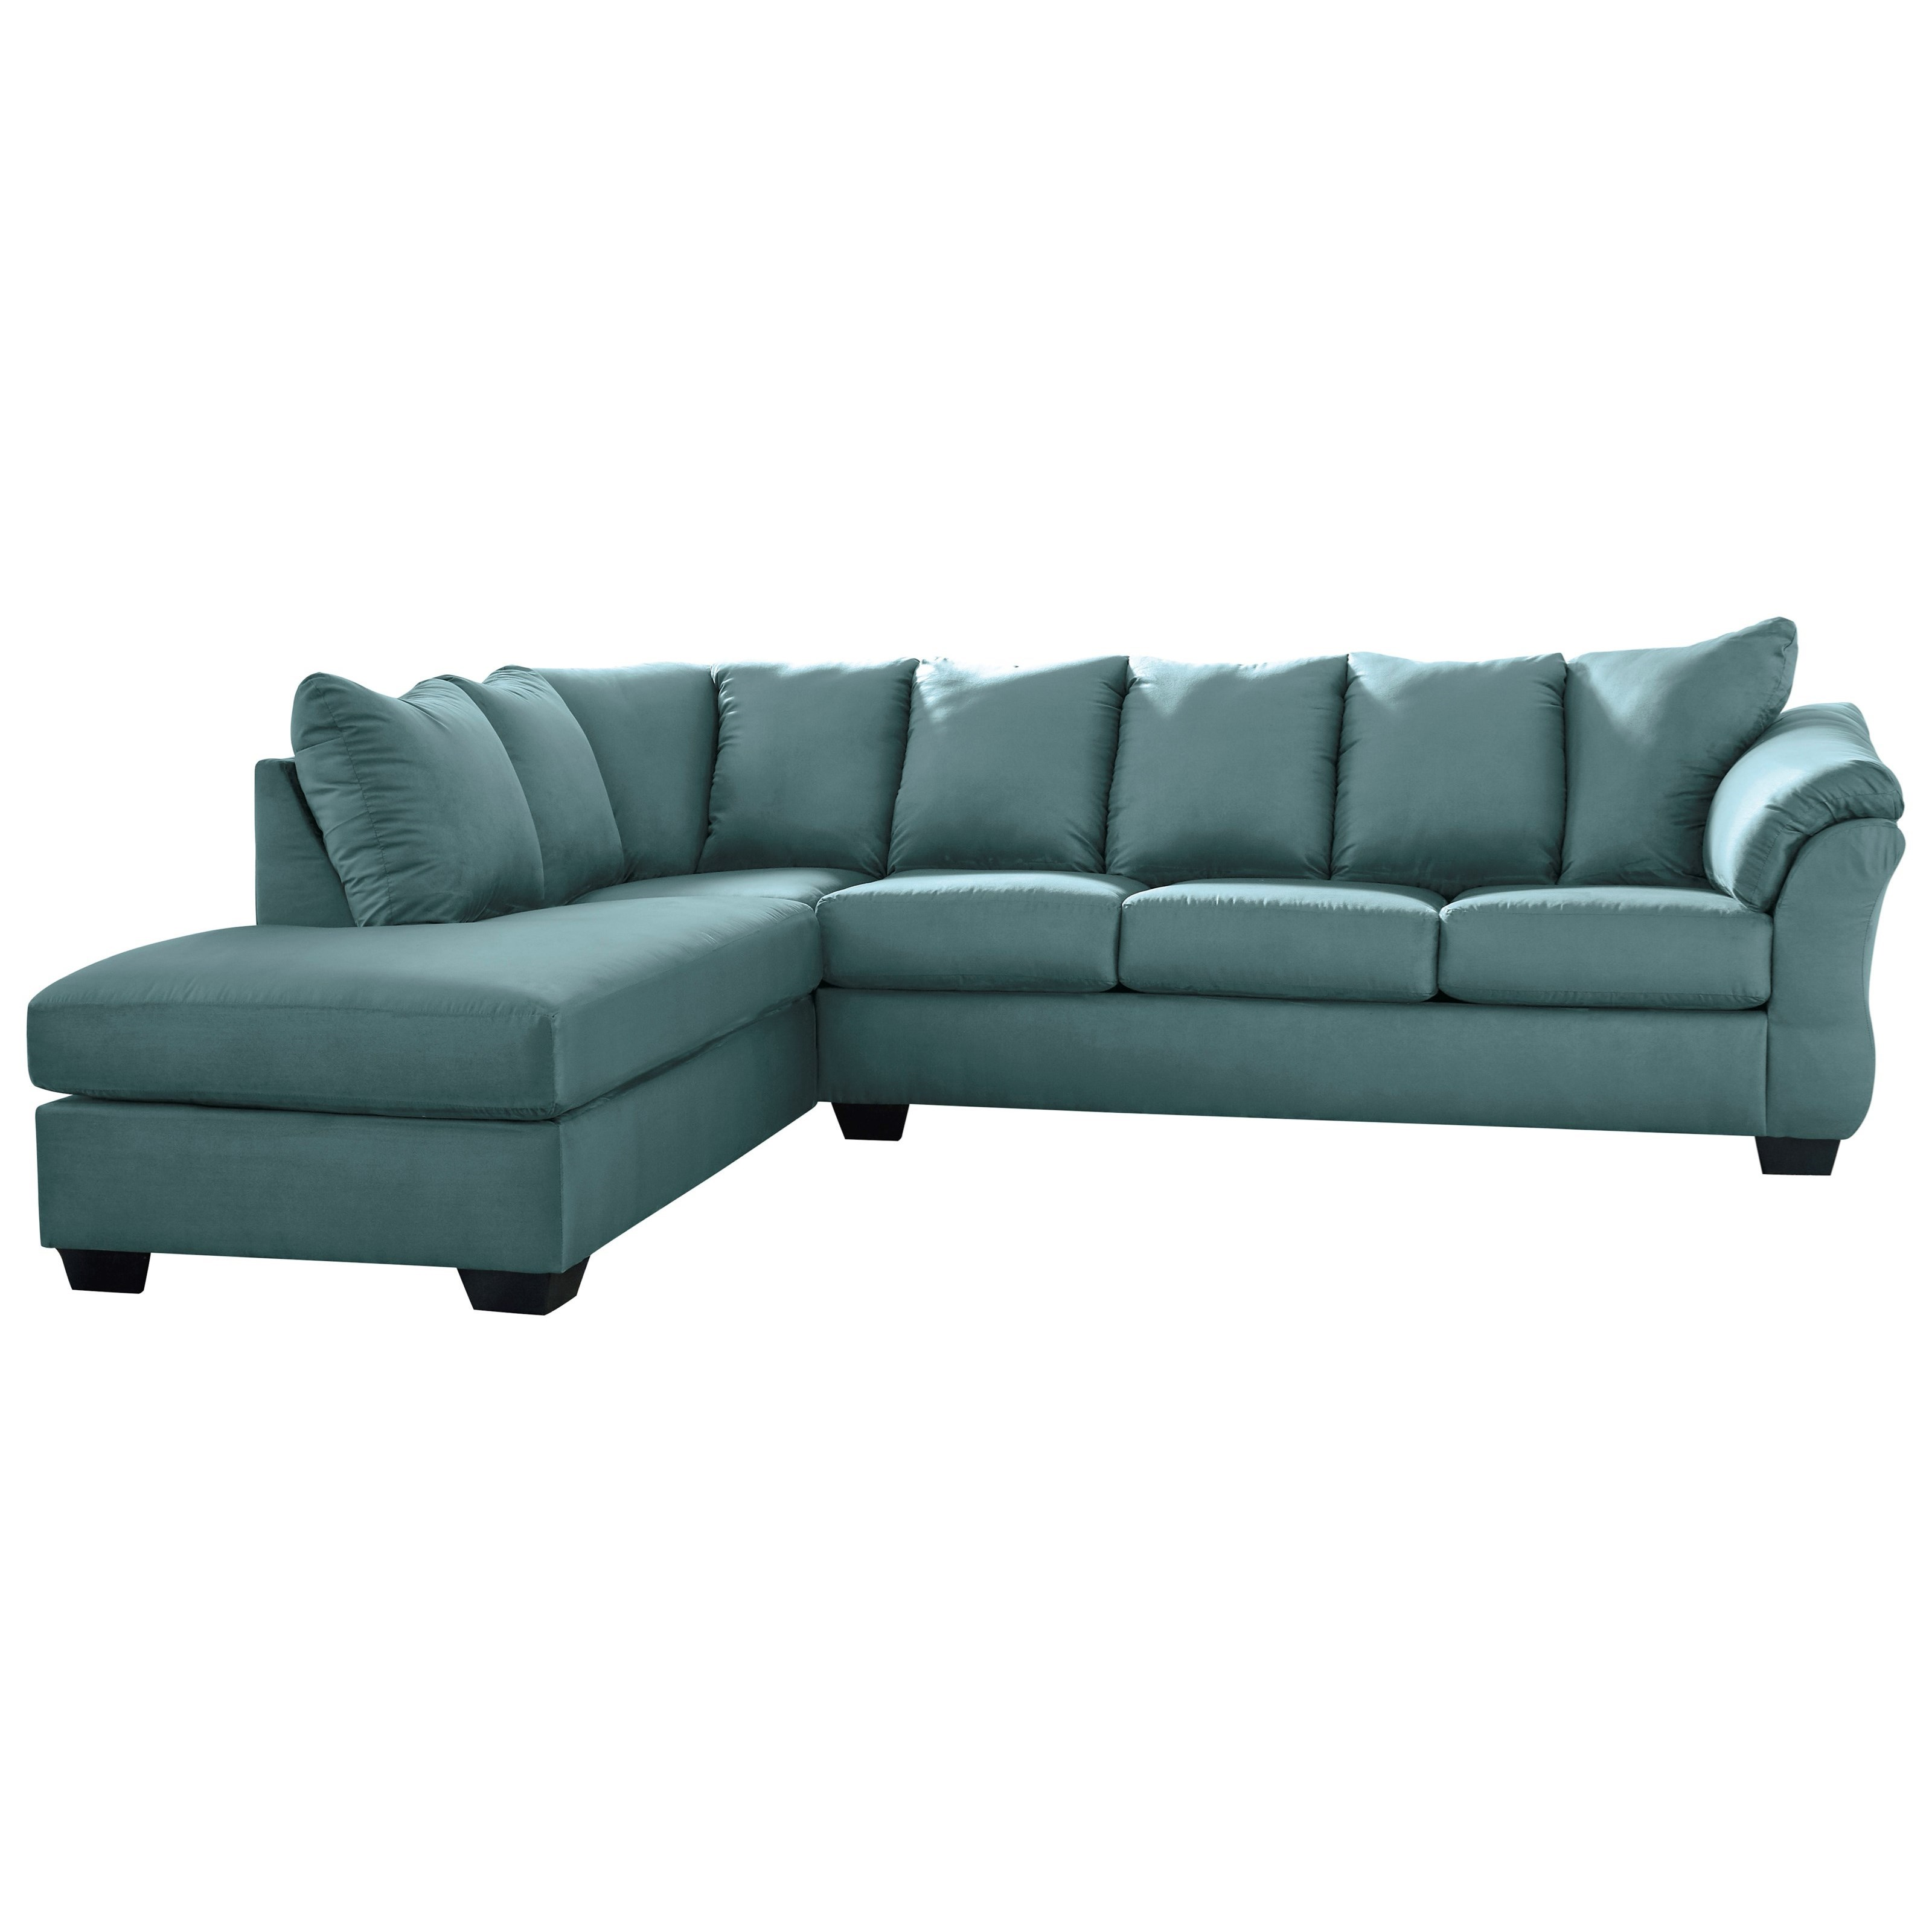 Darcy - Sky 2-Piece Sectional Sofa with Chaise by Ashley (Signature Design) at Johnny Janosik